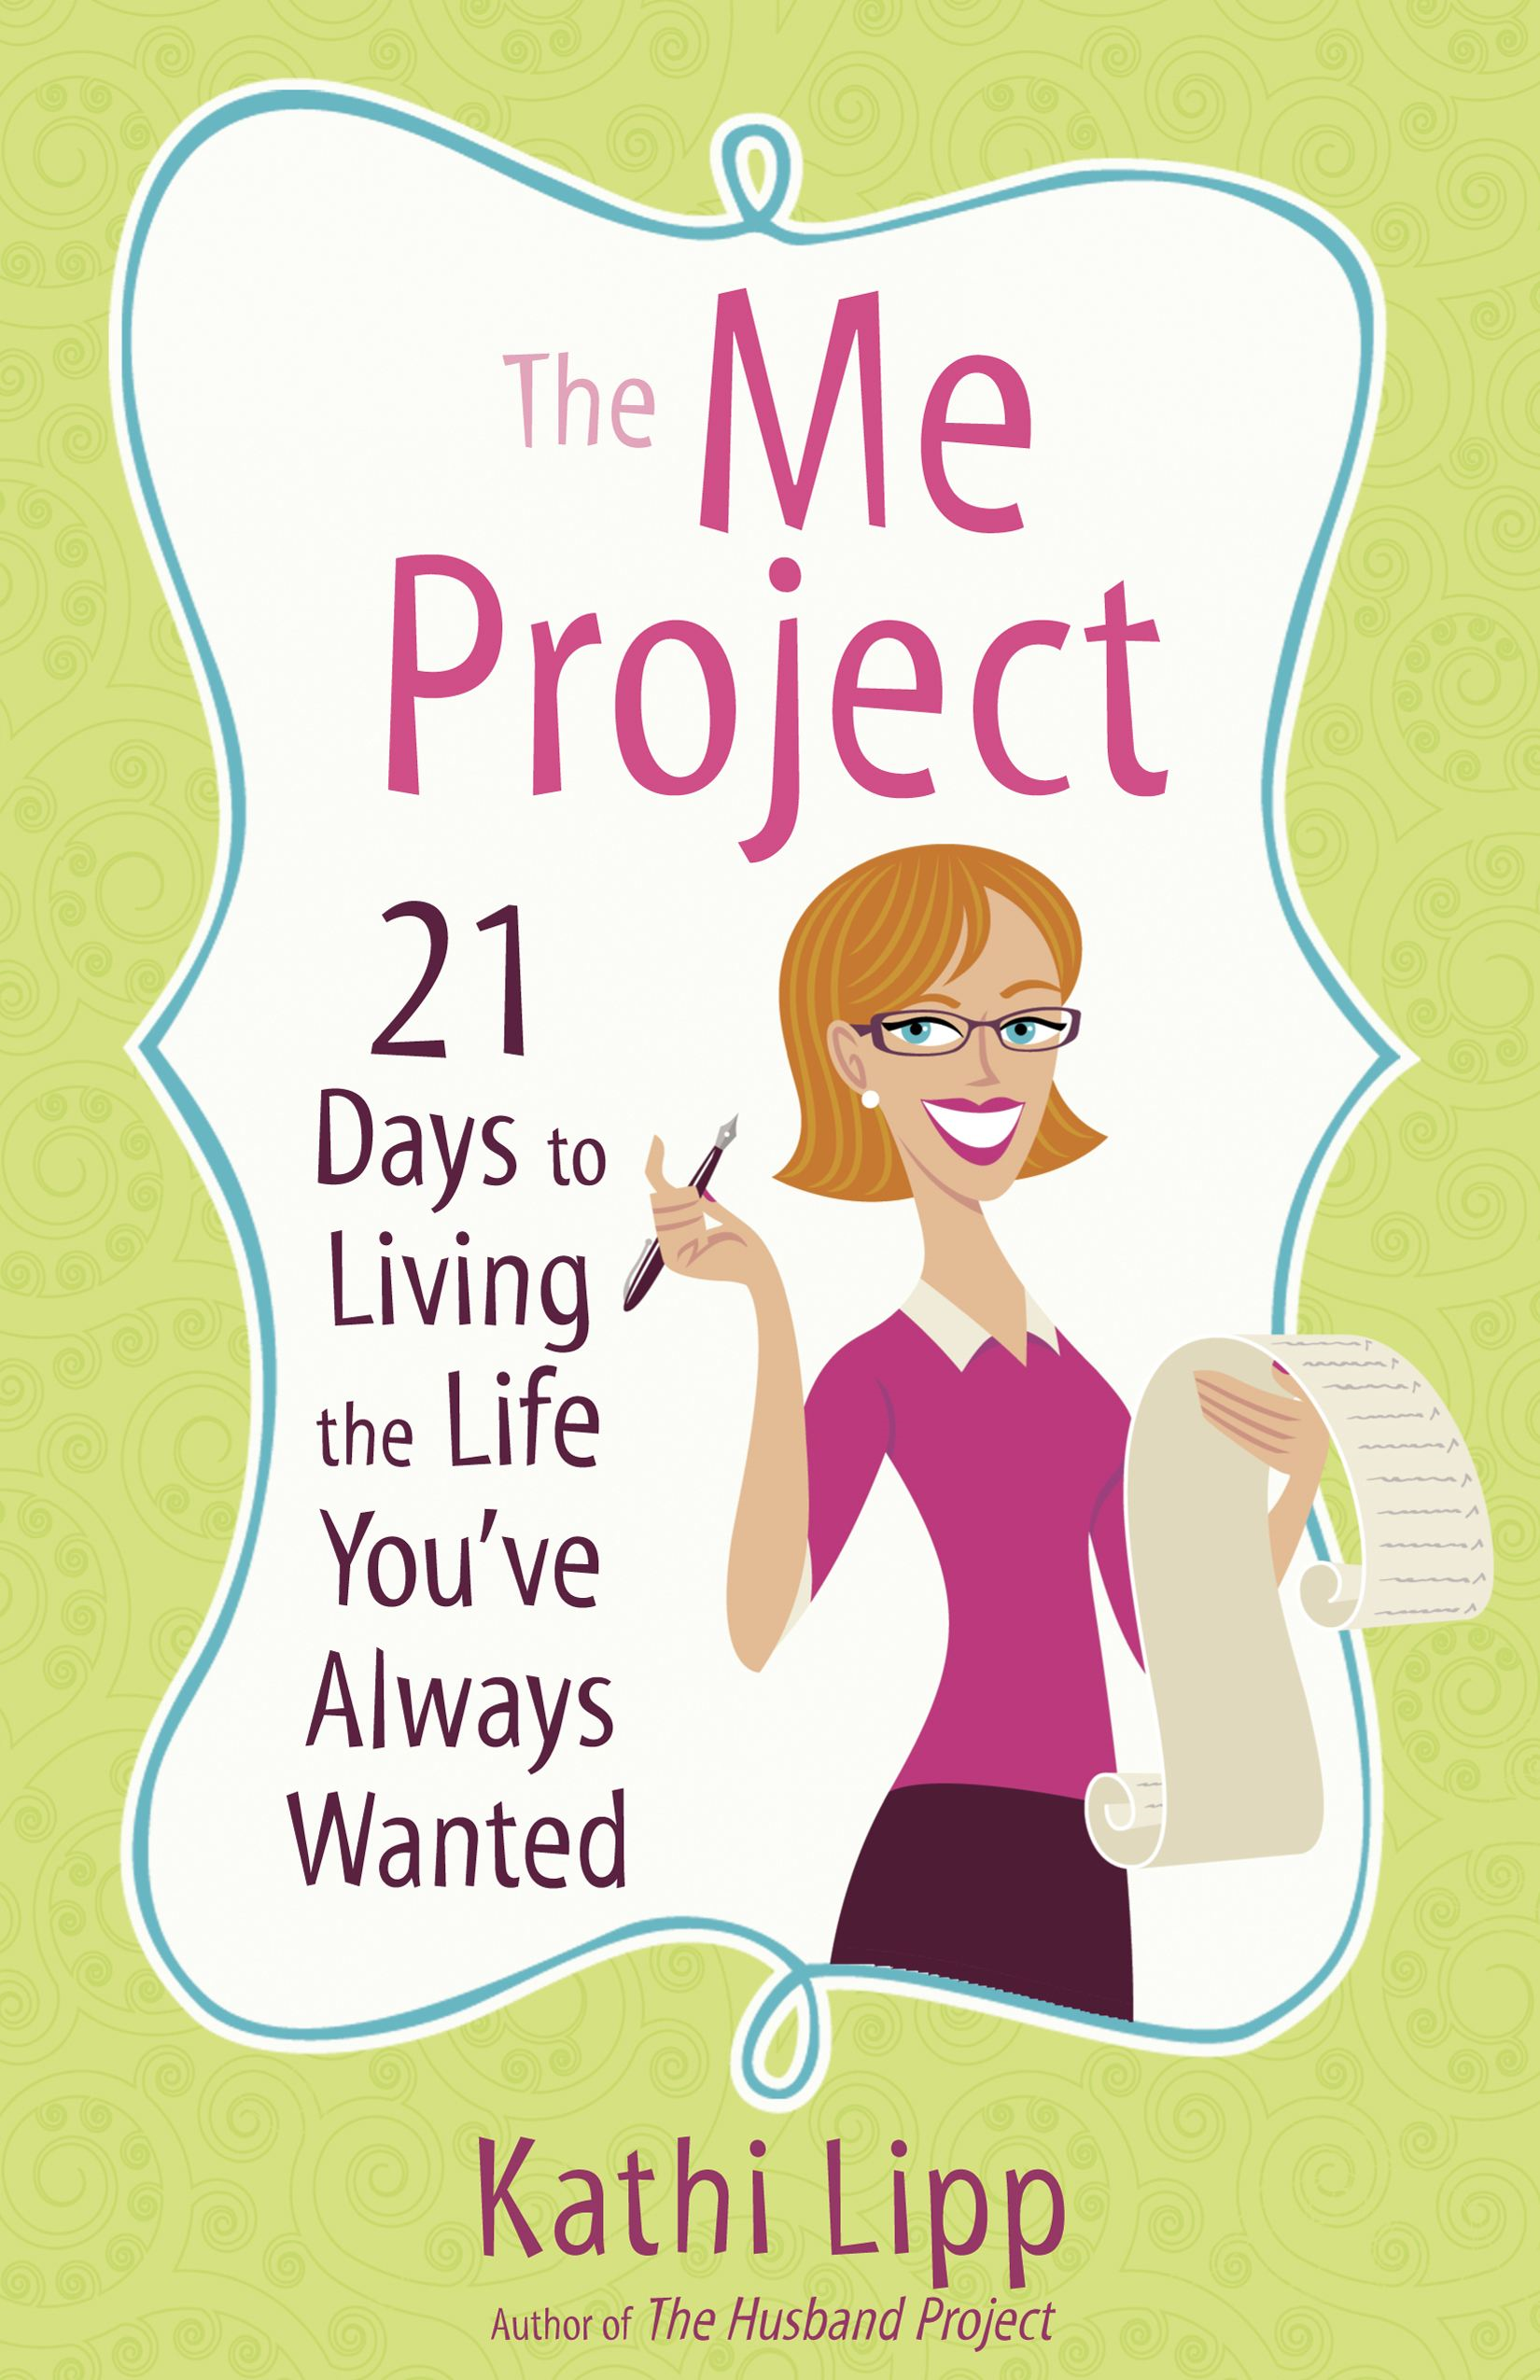 The Me Project By: Kathi Lipp